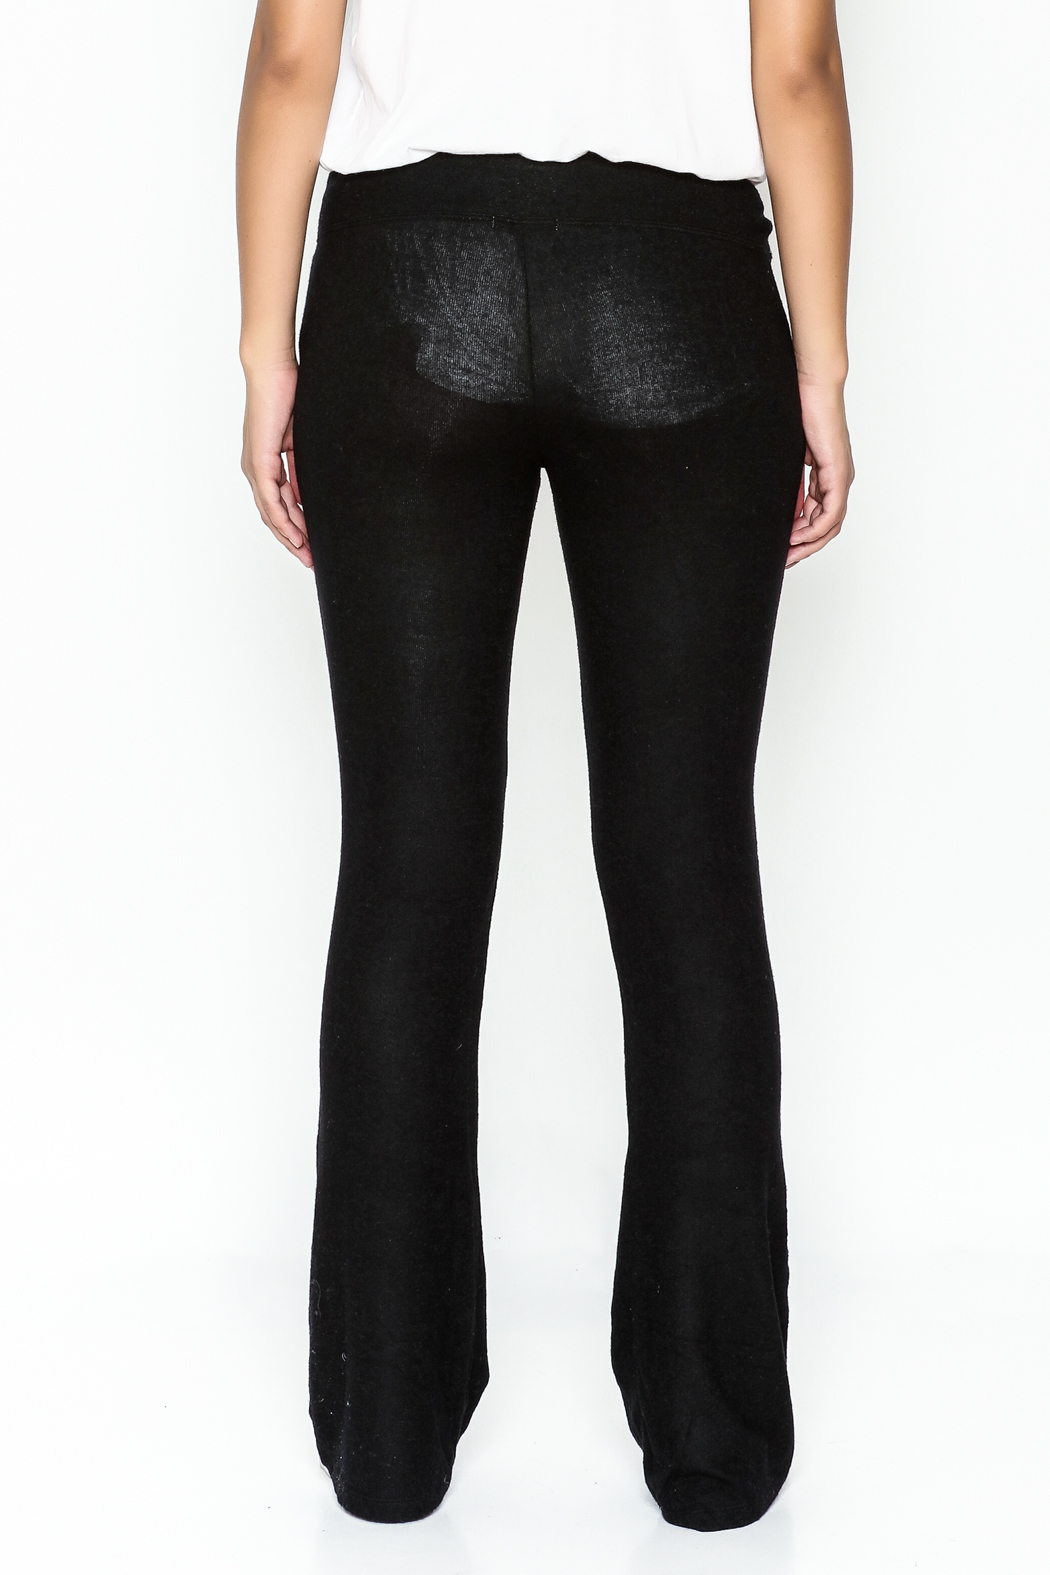 z supply Sheer Black Bootcut Pants - Back Cropped Image